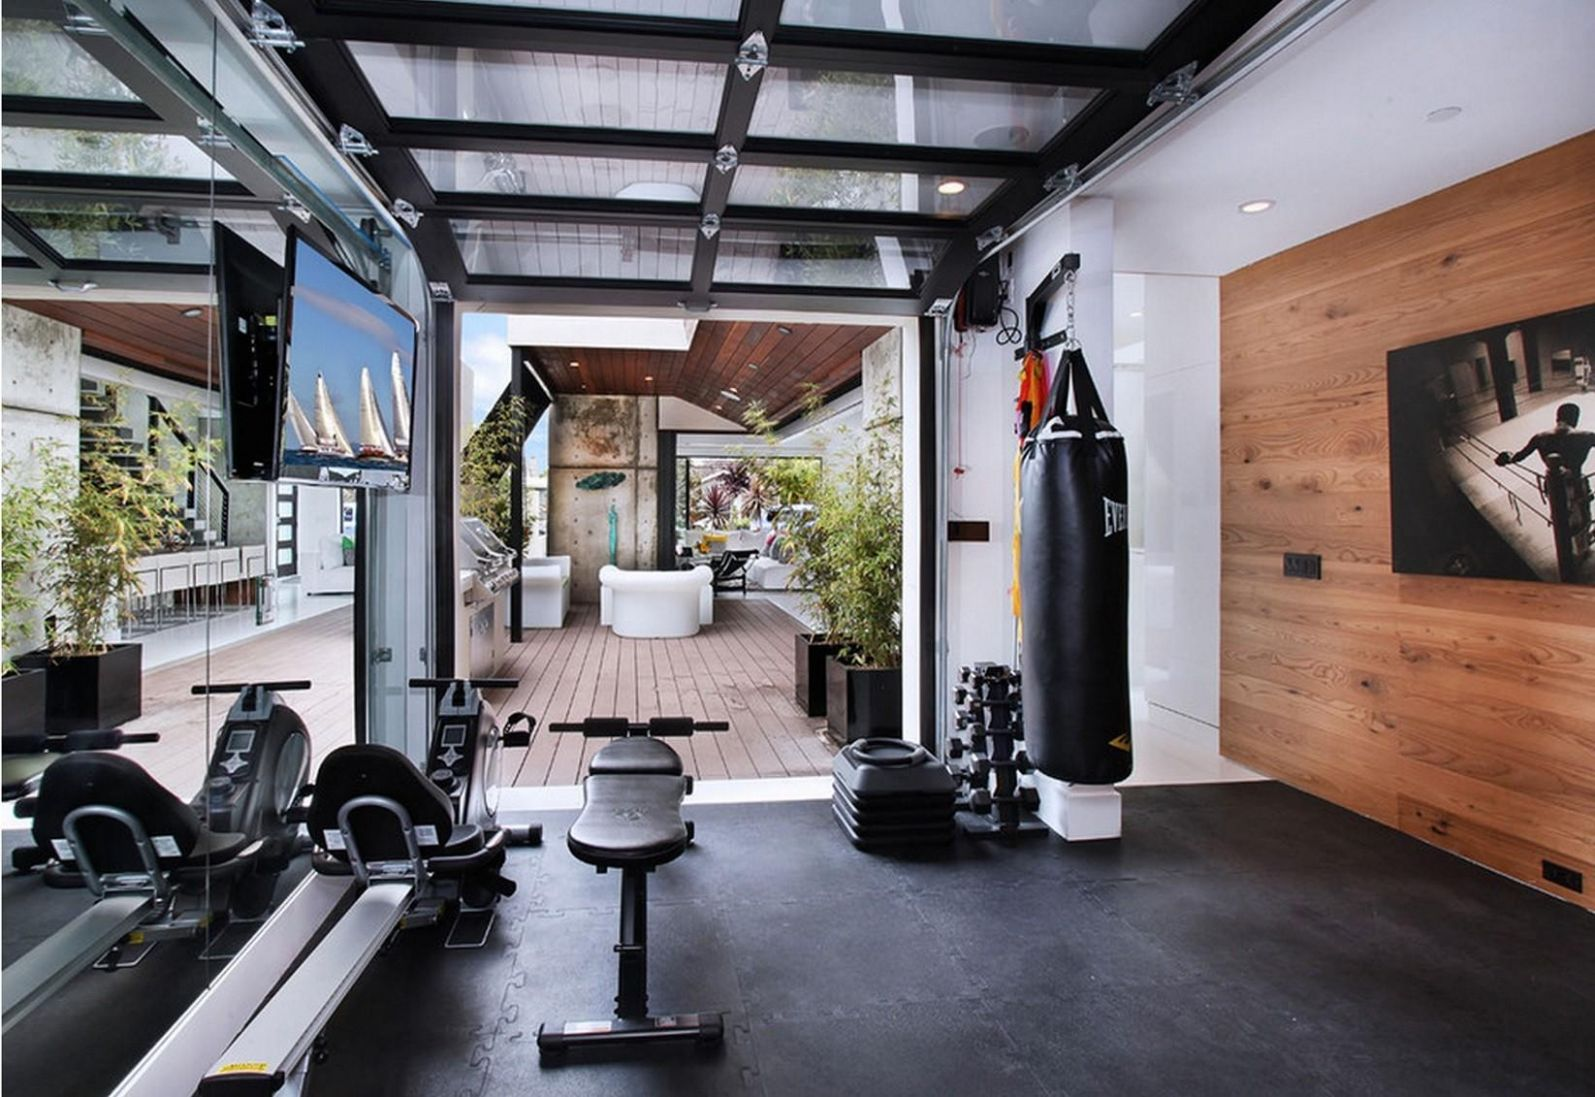 11 Fancy Home Gym Design Ideas That You've Never Seen (Photographs ...